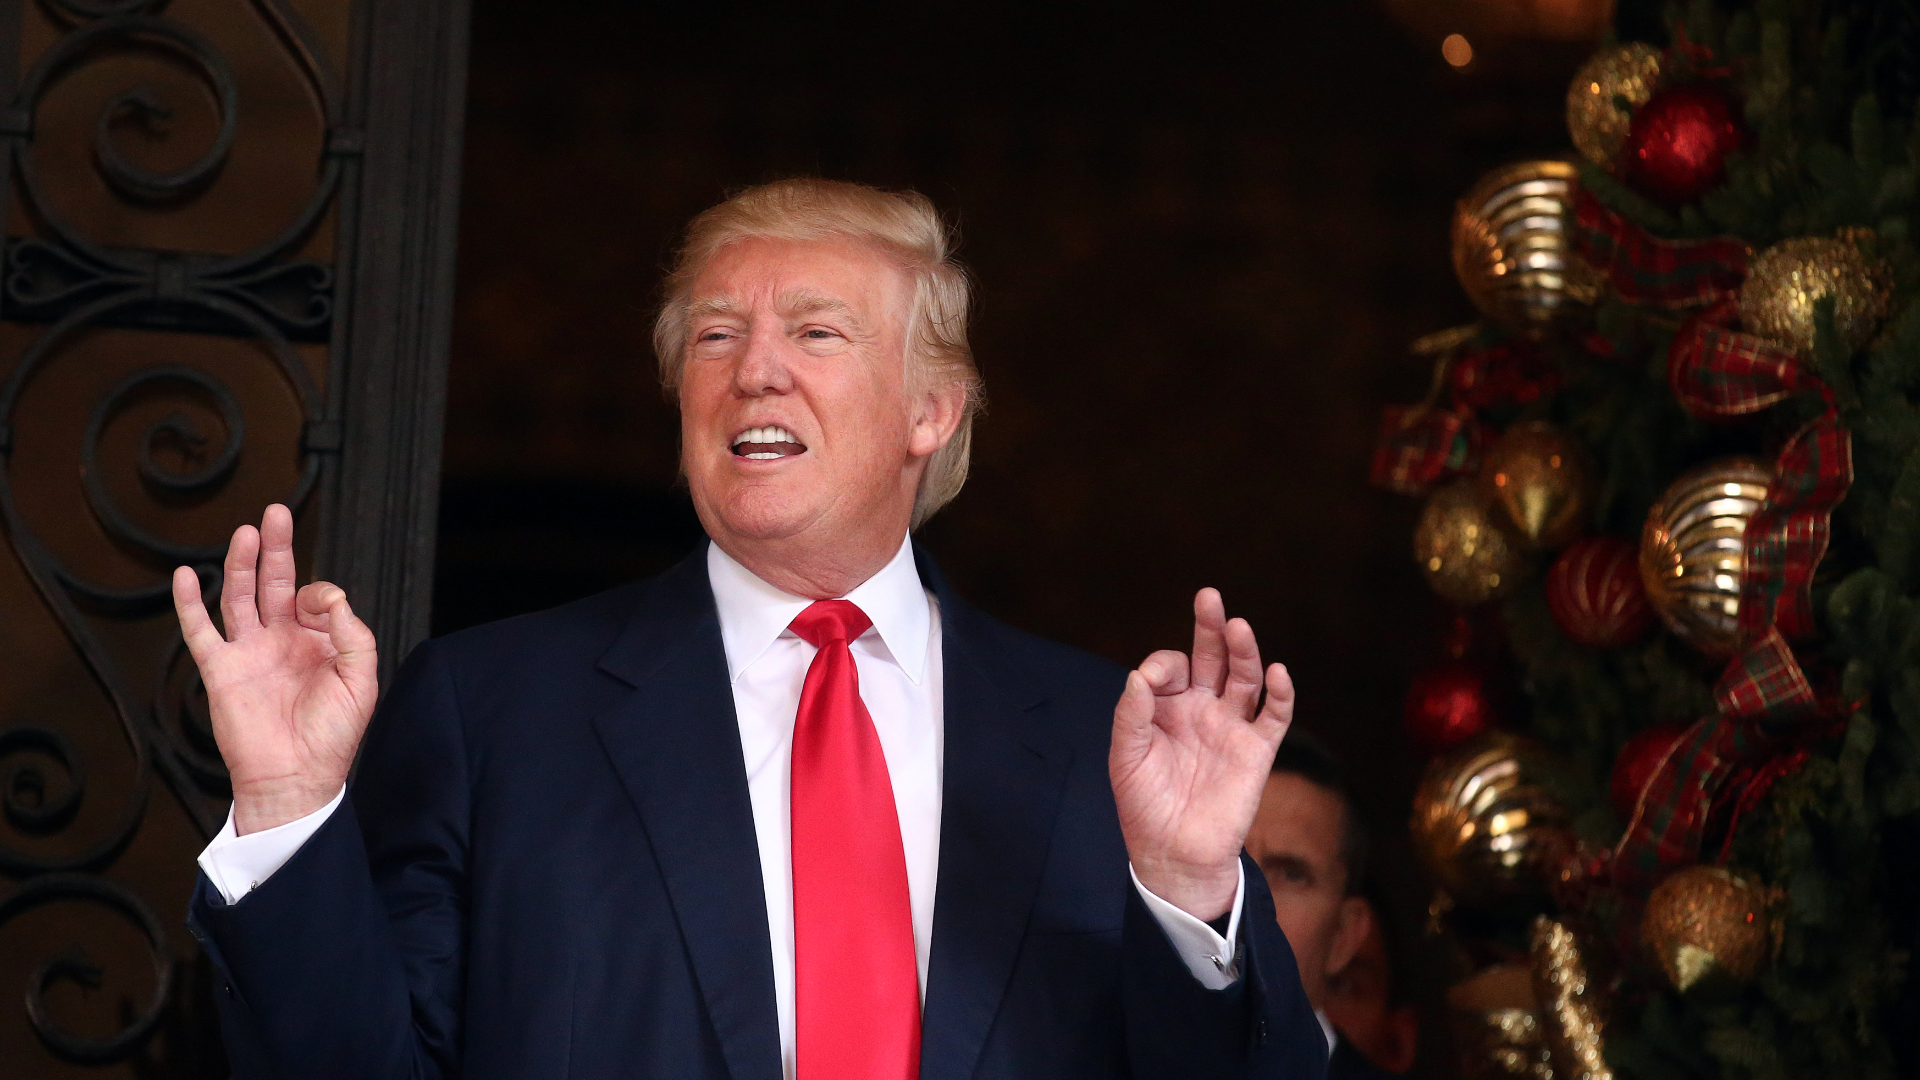 Trump on the future of proposed Muslim ban, registry: 'You know my plans'